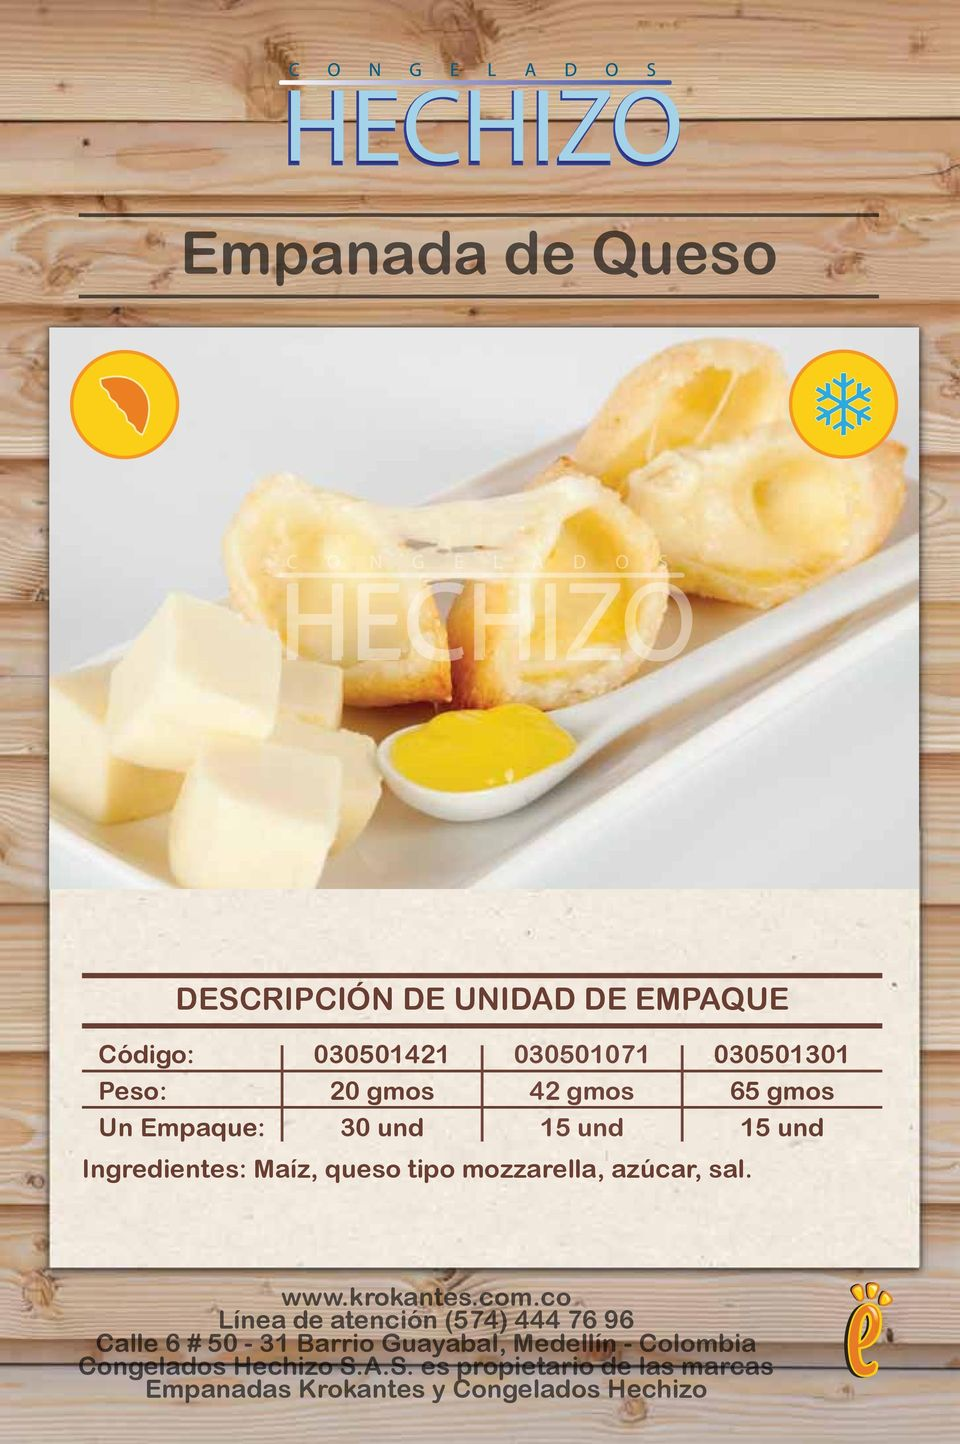 Ingredientes: Maíz, queso tipo